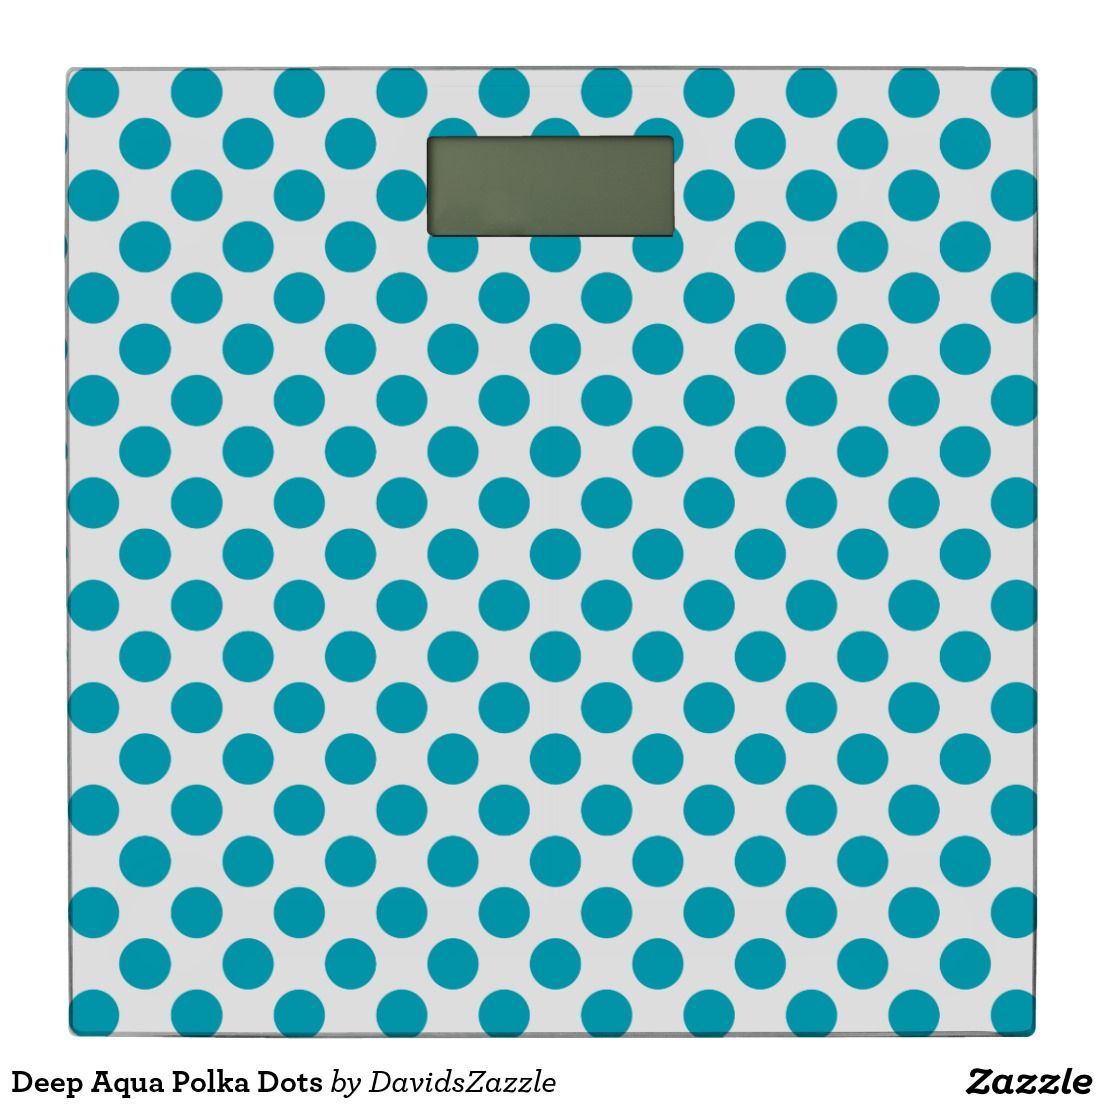 Deep Aqua Polka Dots Bathroom Scale Available on many products! Hit the 'available on' tab near the product description to see them all! Thanks for looking!  @zazzle #art #polka #dots #shop #home #decor #bathroom #bedroom #bath #bed #duvet #cover #shower #curtain #pillow #case #apartment #decorate #accessory #accessories #fashion #style #women #men #shopping #buy #sale #gift #idea #fun #sweet #cool #neat #modern #chic #blue #aqua #light #dark #white